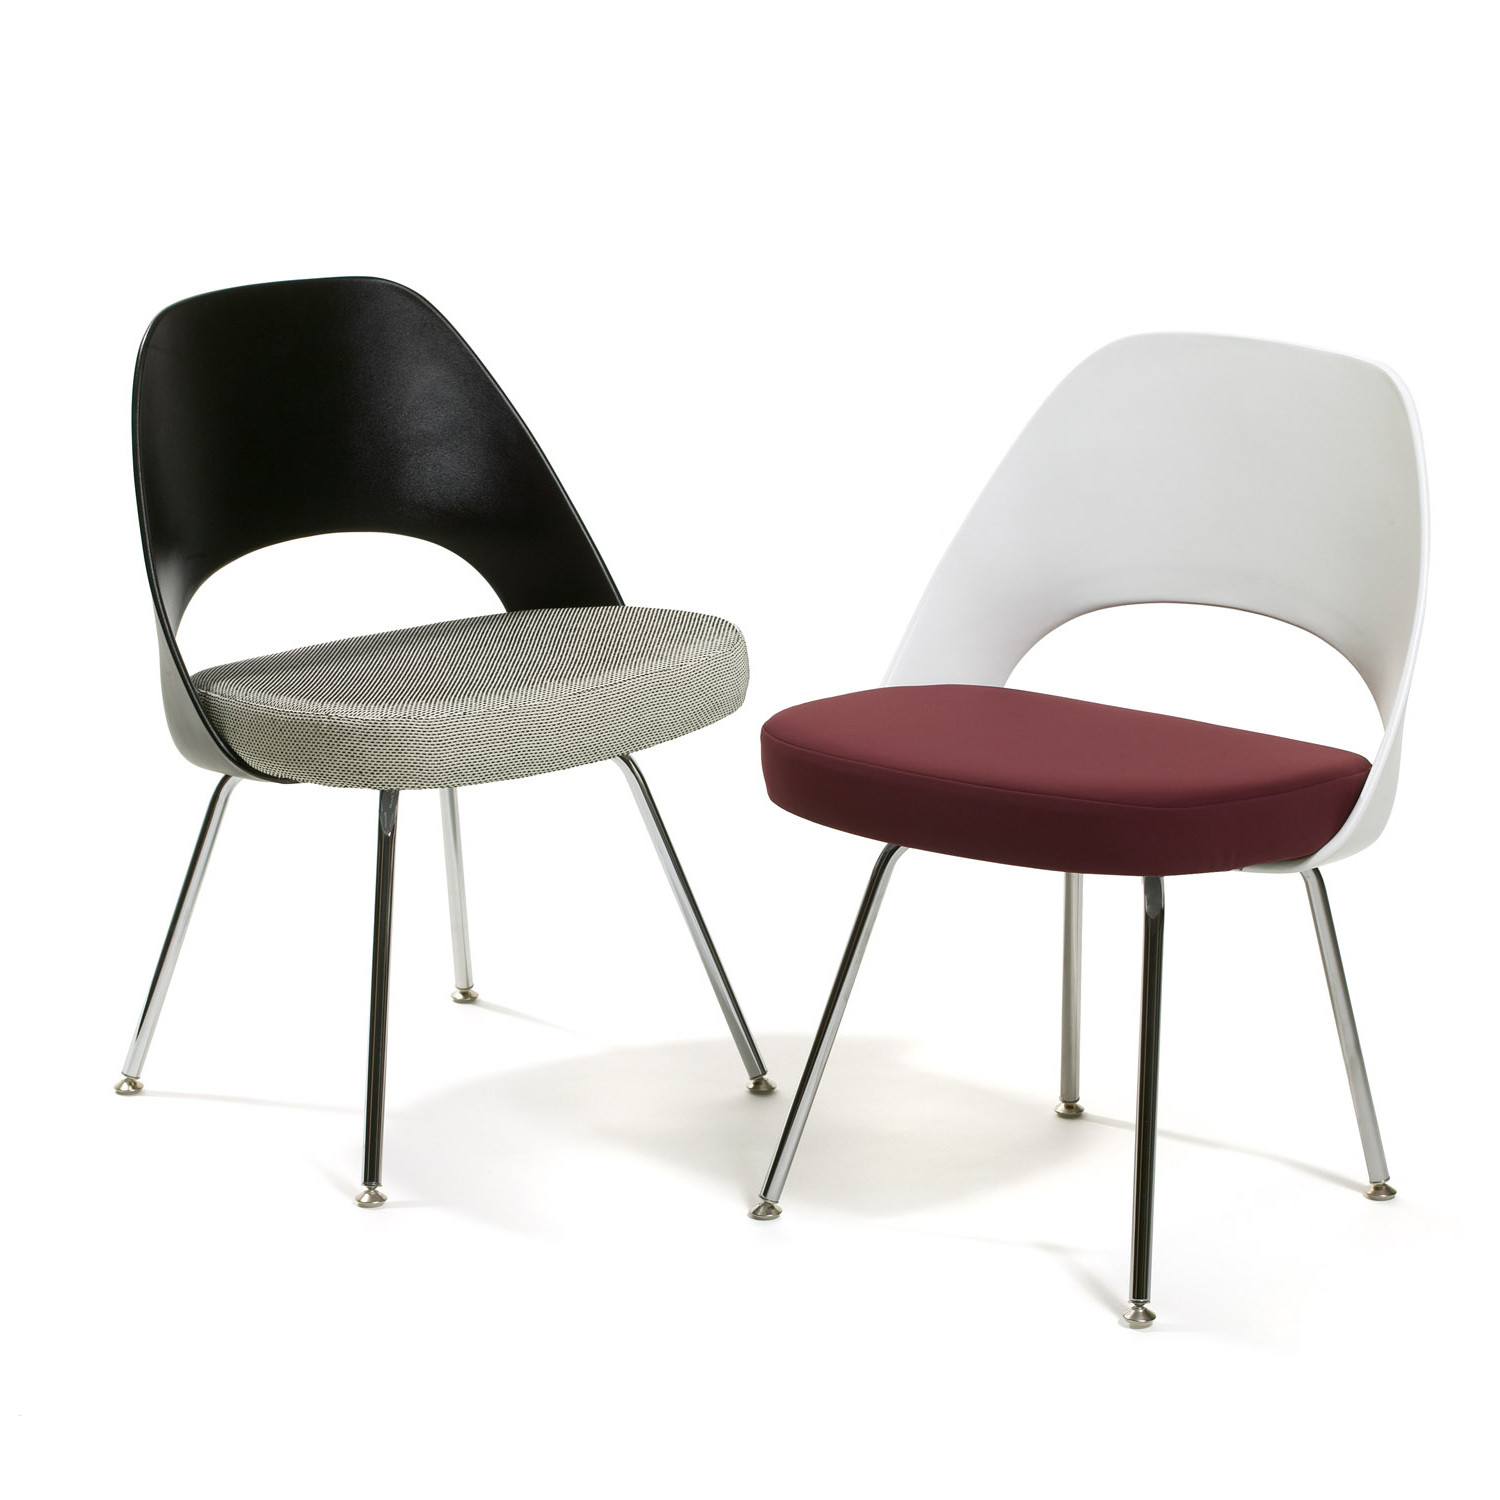 Saarinen Chairs - Steel Legs